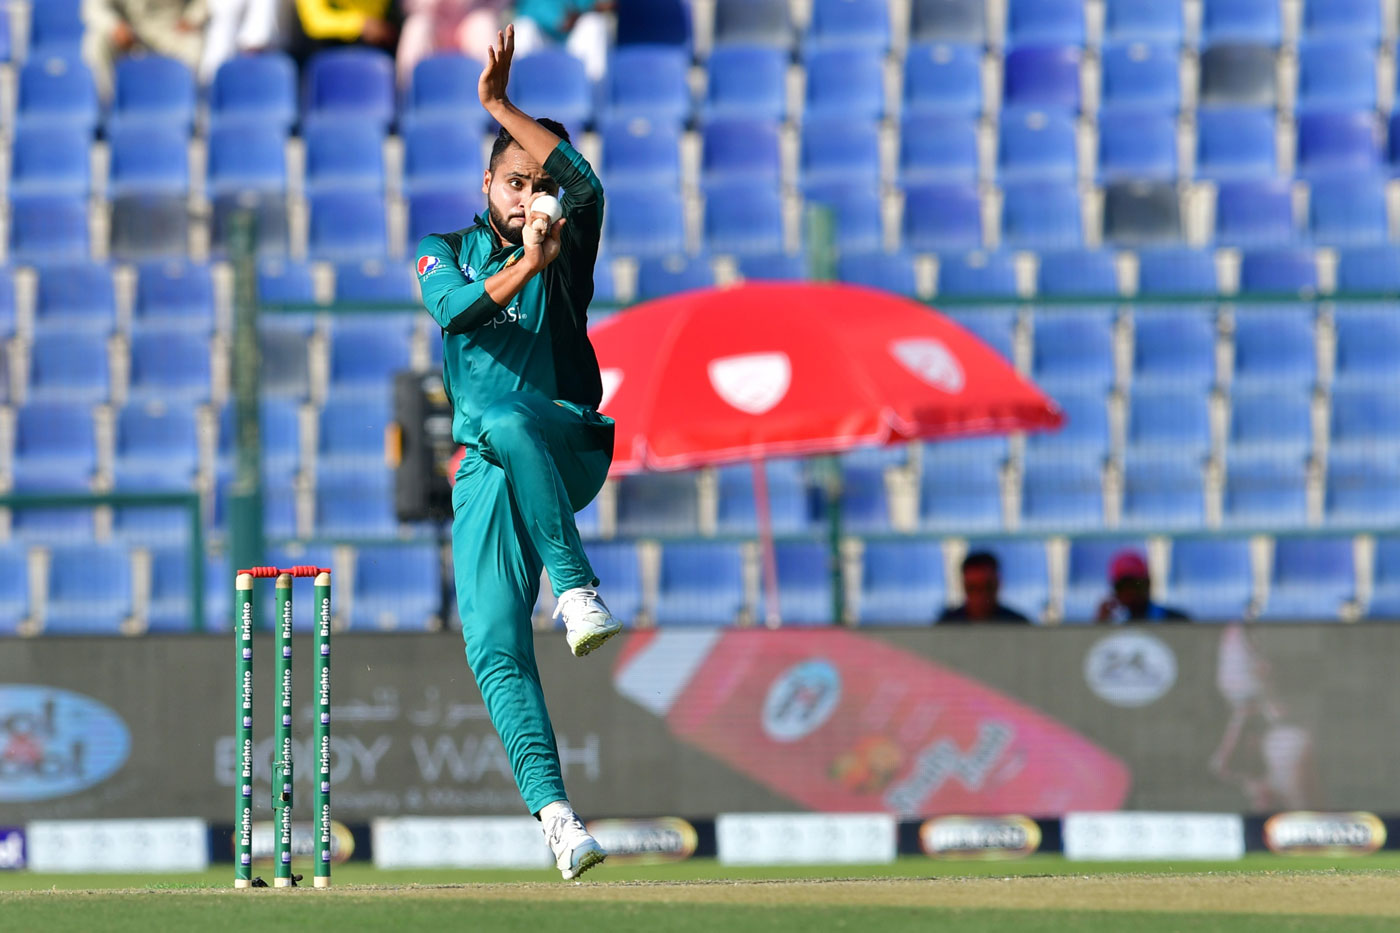 Faheem Ashraf to be rested for remainder of the ODI series against Australia